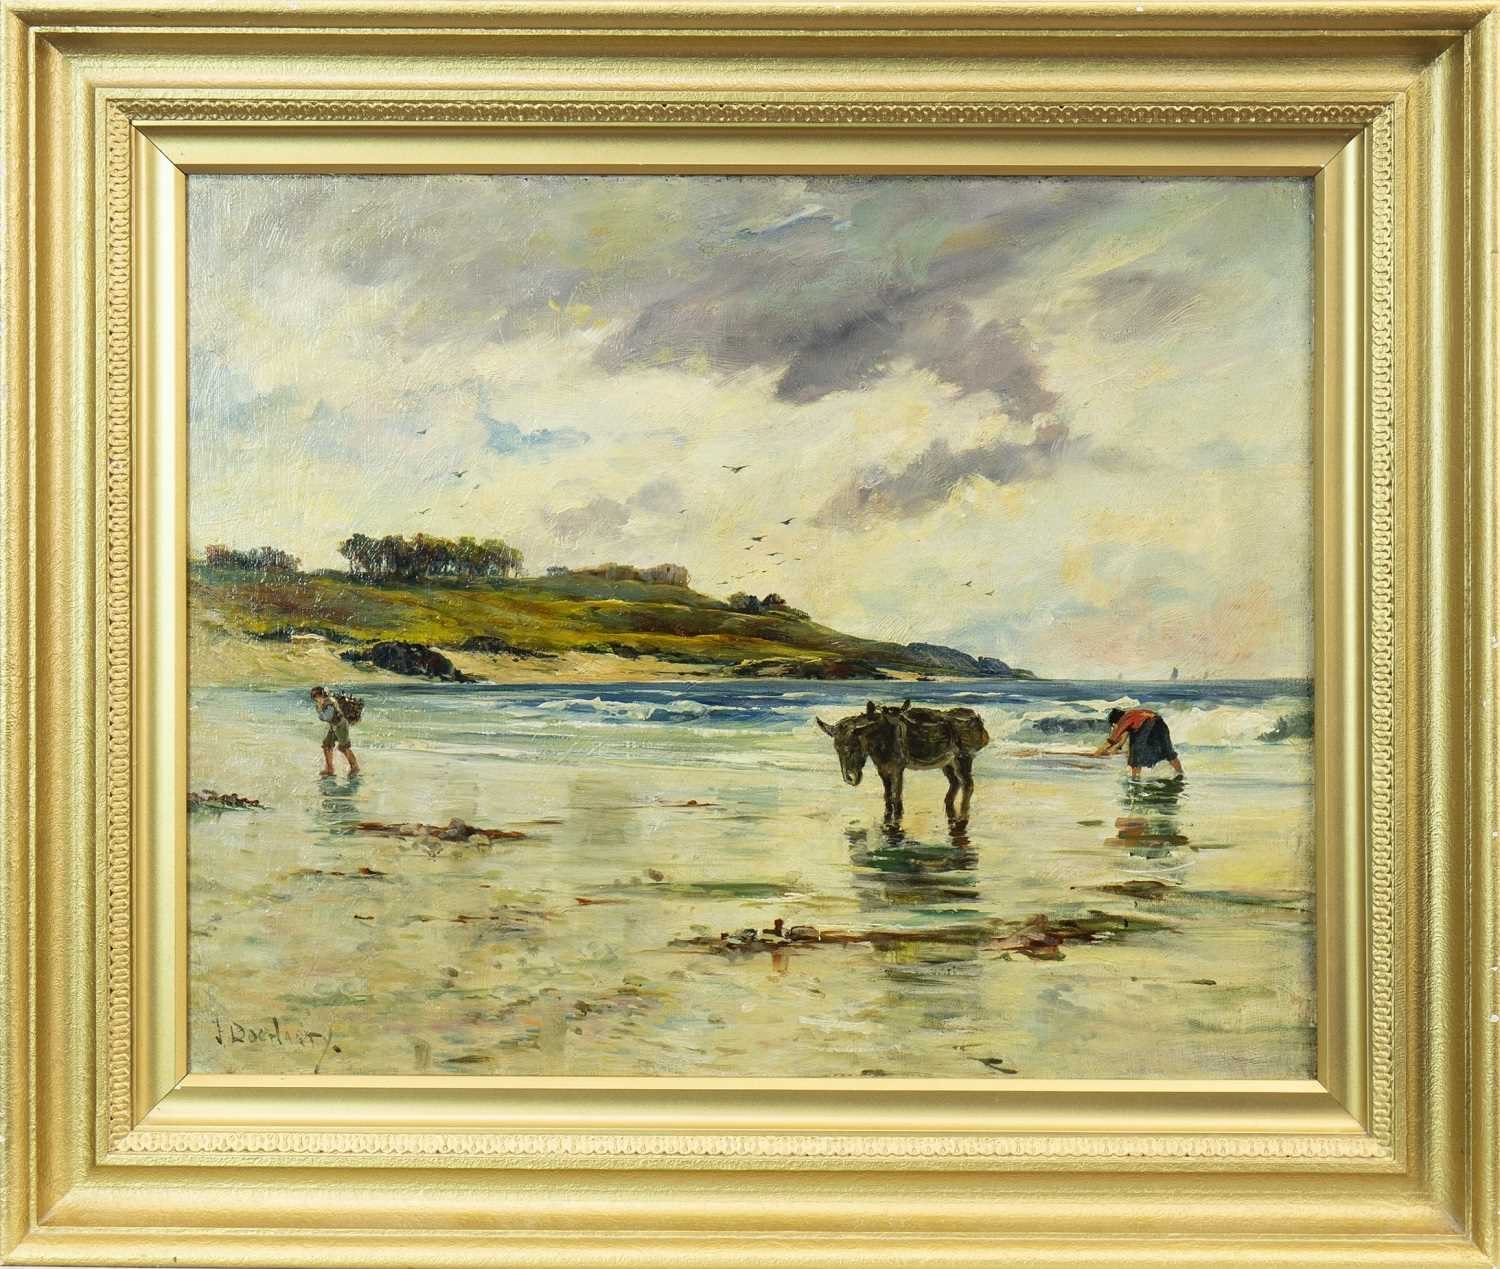 Lot 430-BEACH SCENE WITH FIGURES AND A DONKEY, AN OIL BY JAMES DOCHARTY